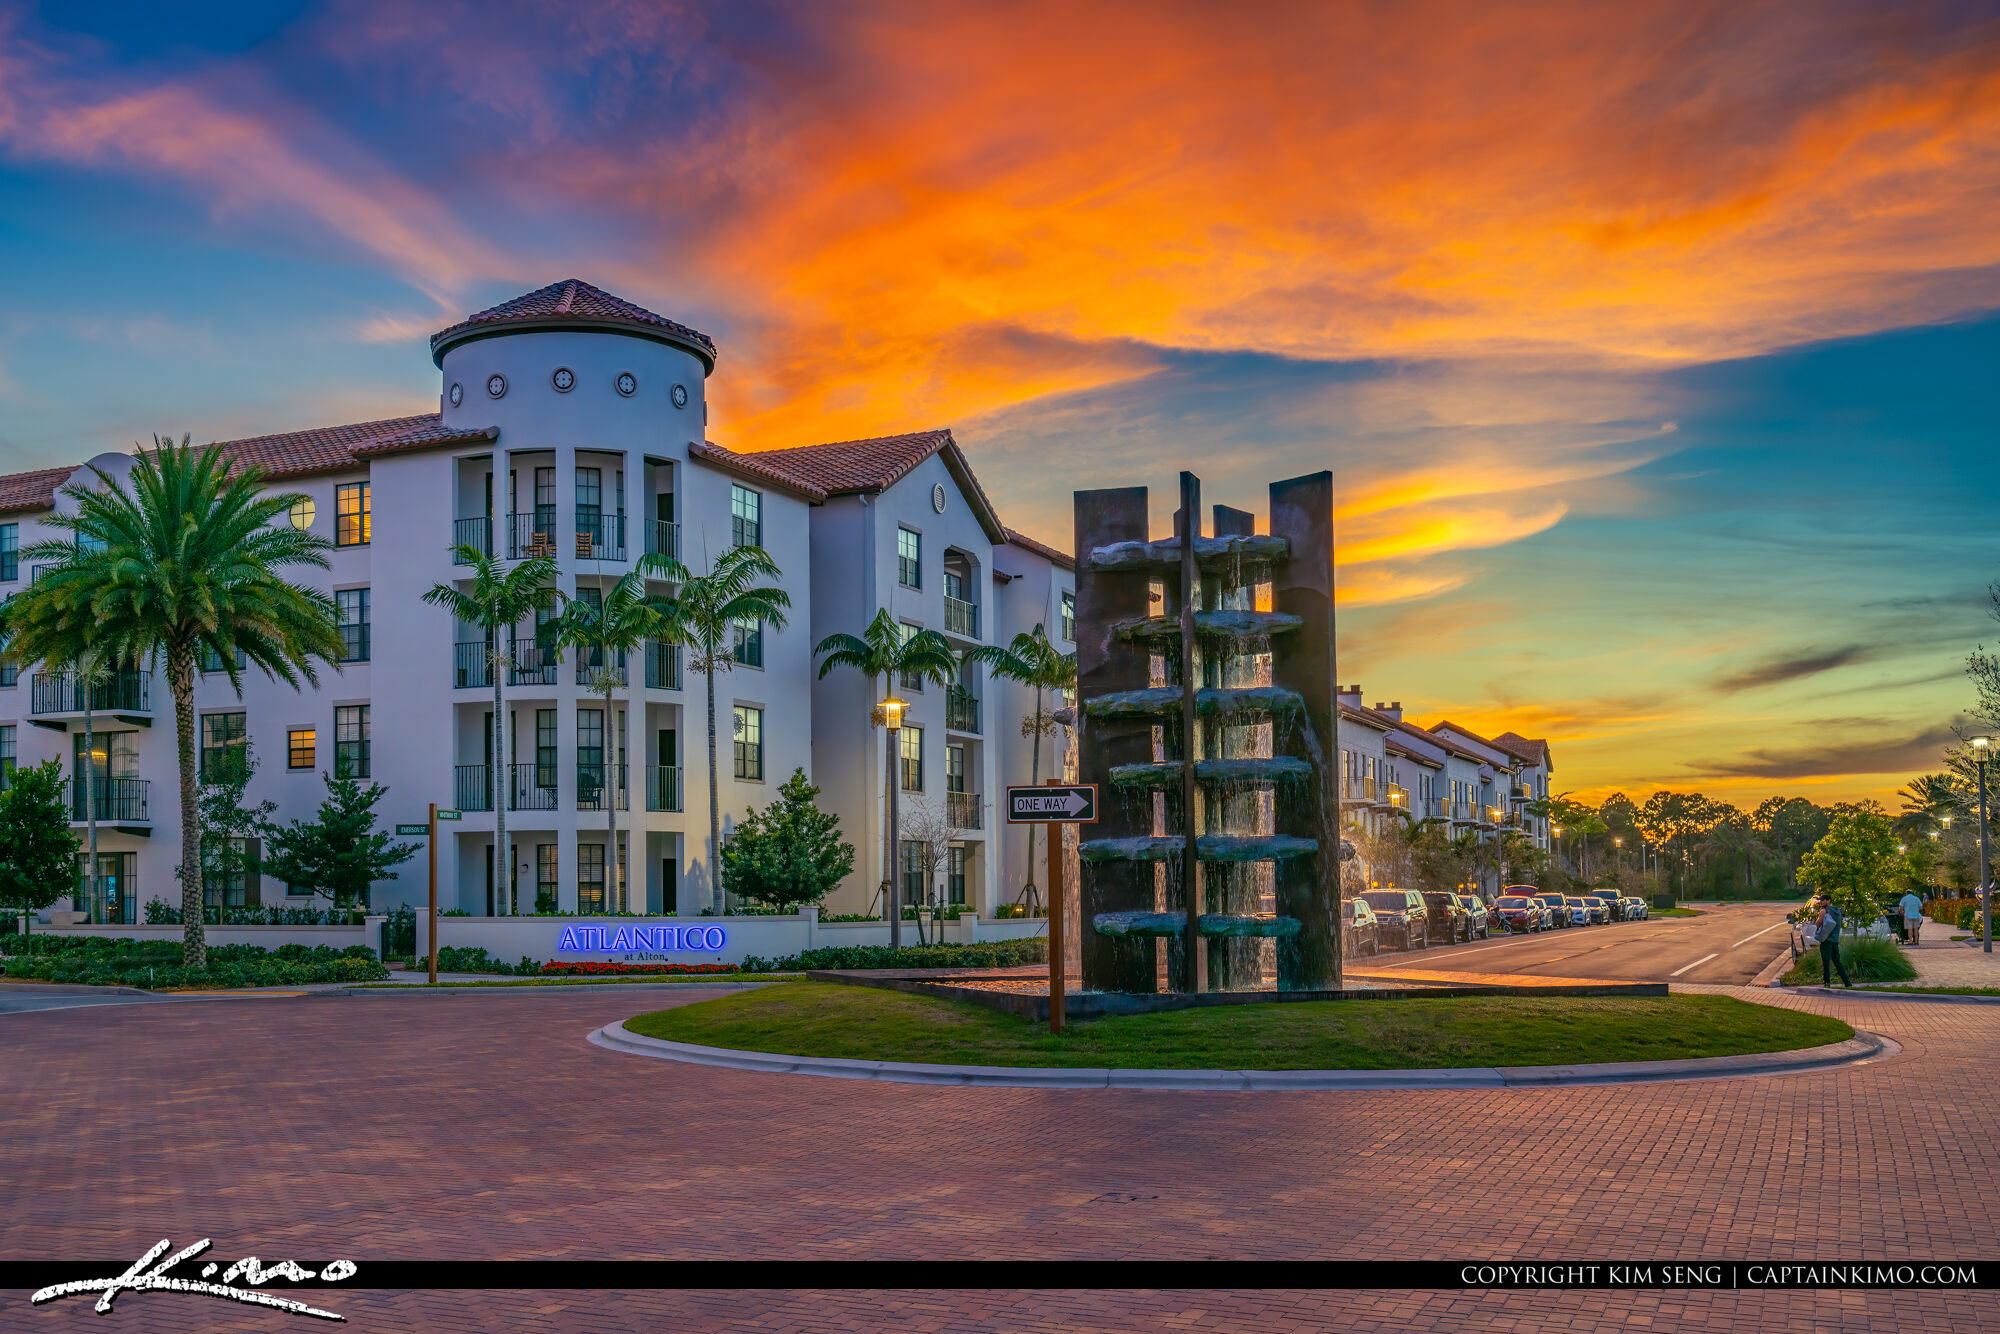 Atlantico at Alton Palm Beach Gardens Sunset Florida